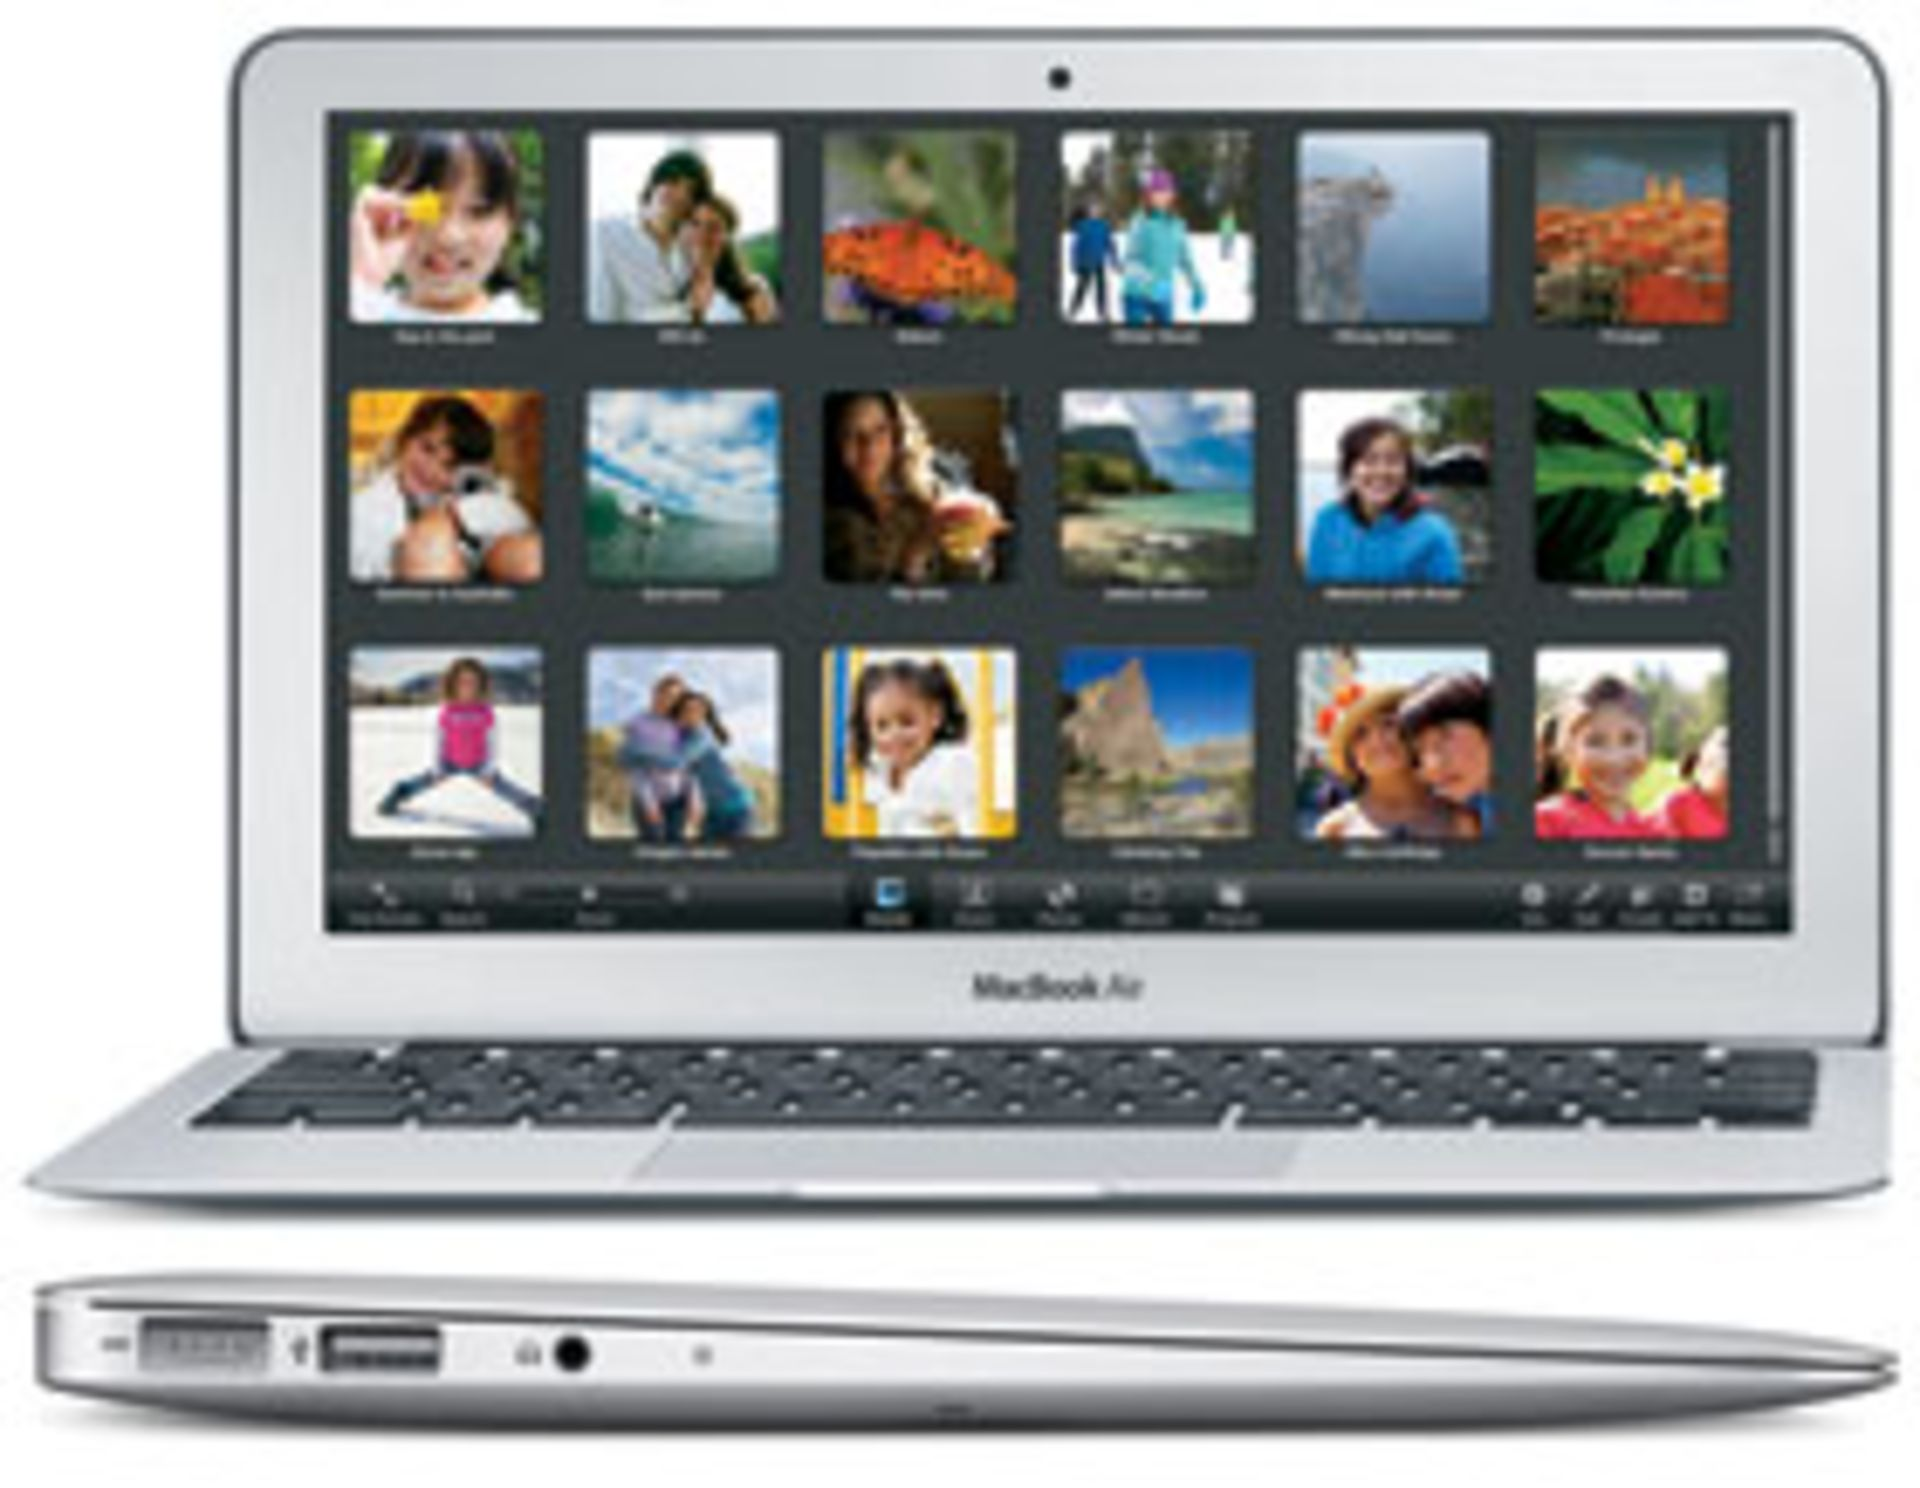 Lot 60039 - V Grade B Macbook Air 11.6 Inch Core 2 Duo - 64GB SSD - A1370 - Available Approx 7 Working Days